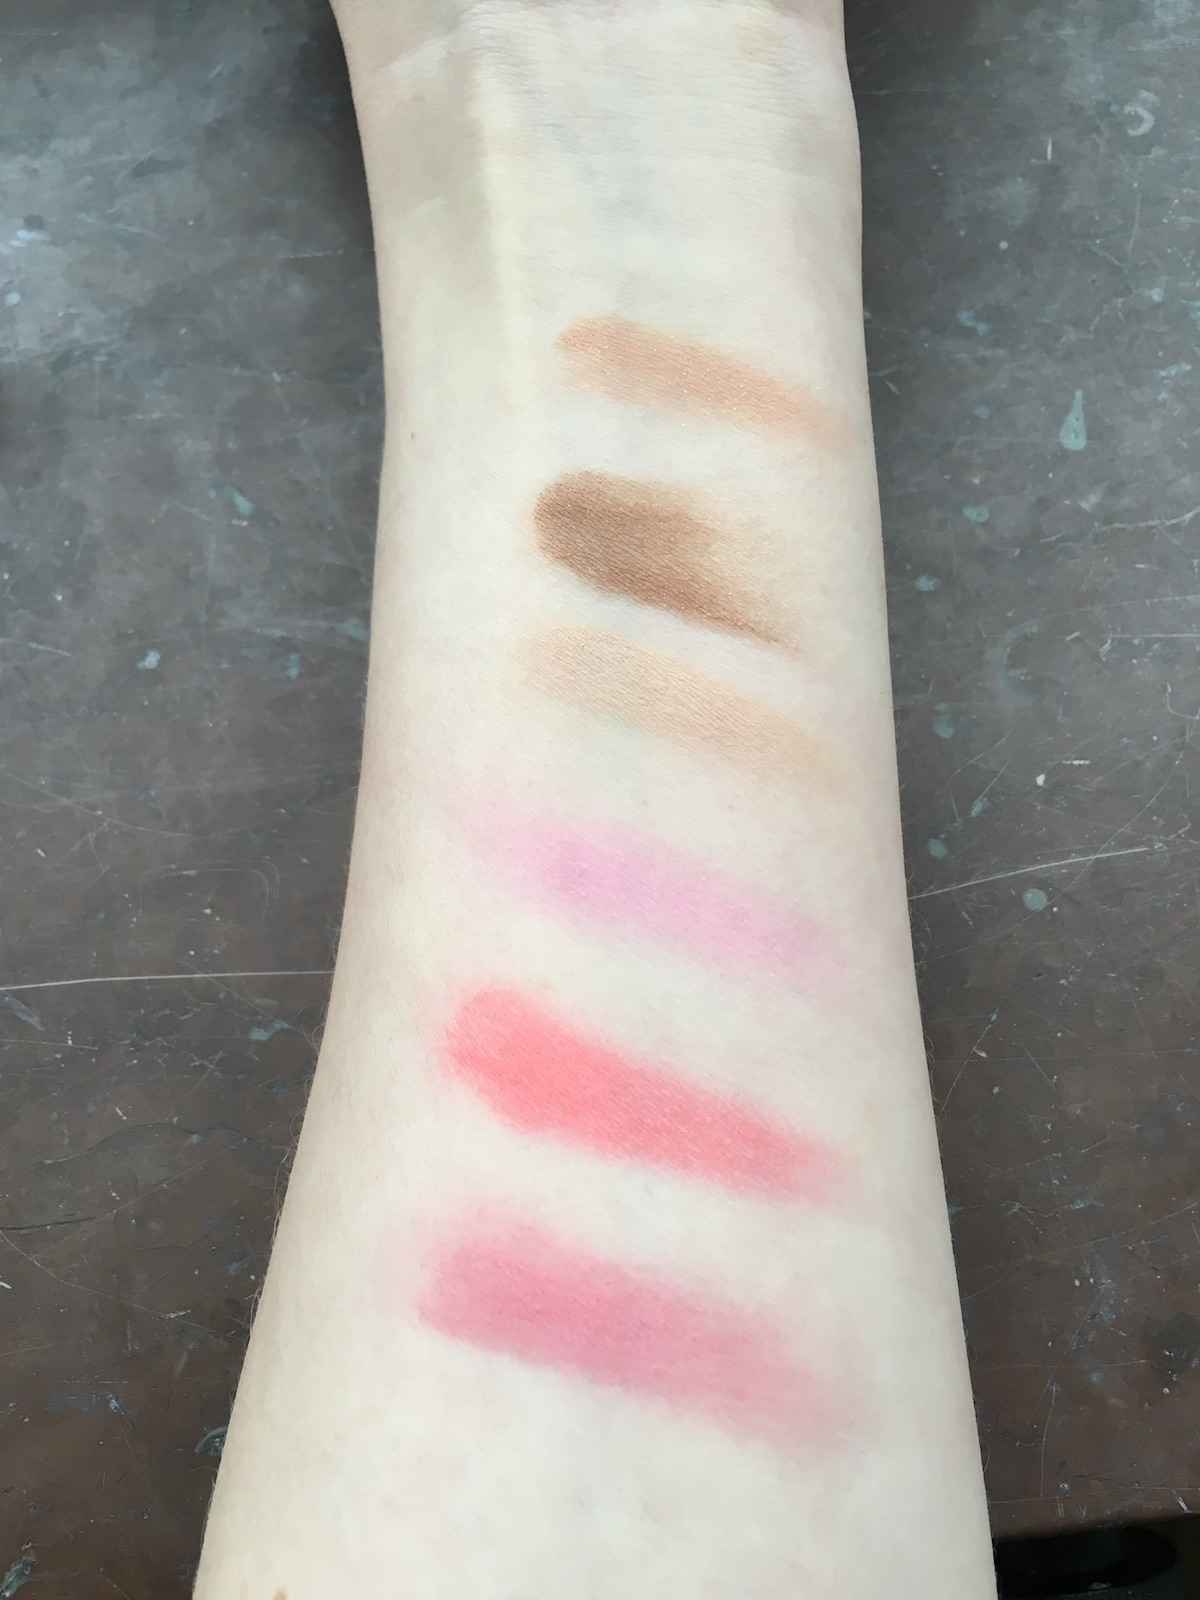 By Terry Sun Cruise Palette Tan & Flash Cruise Swatches